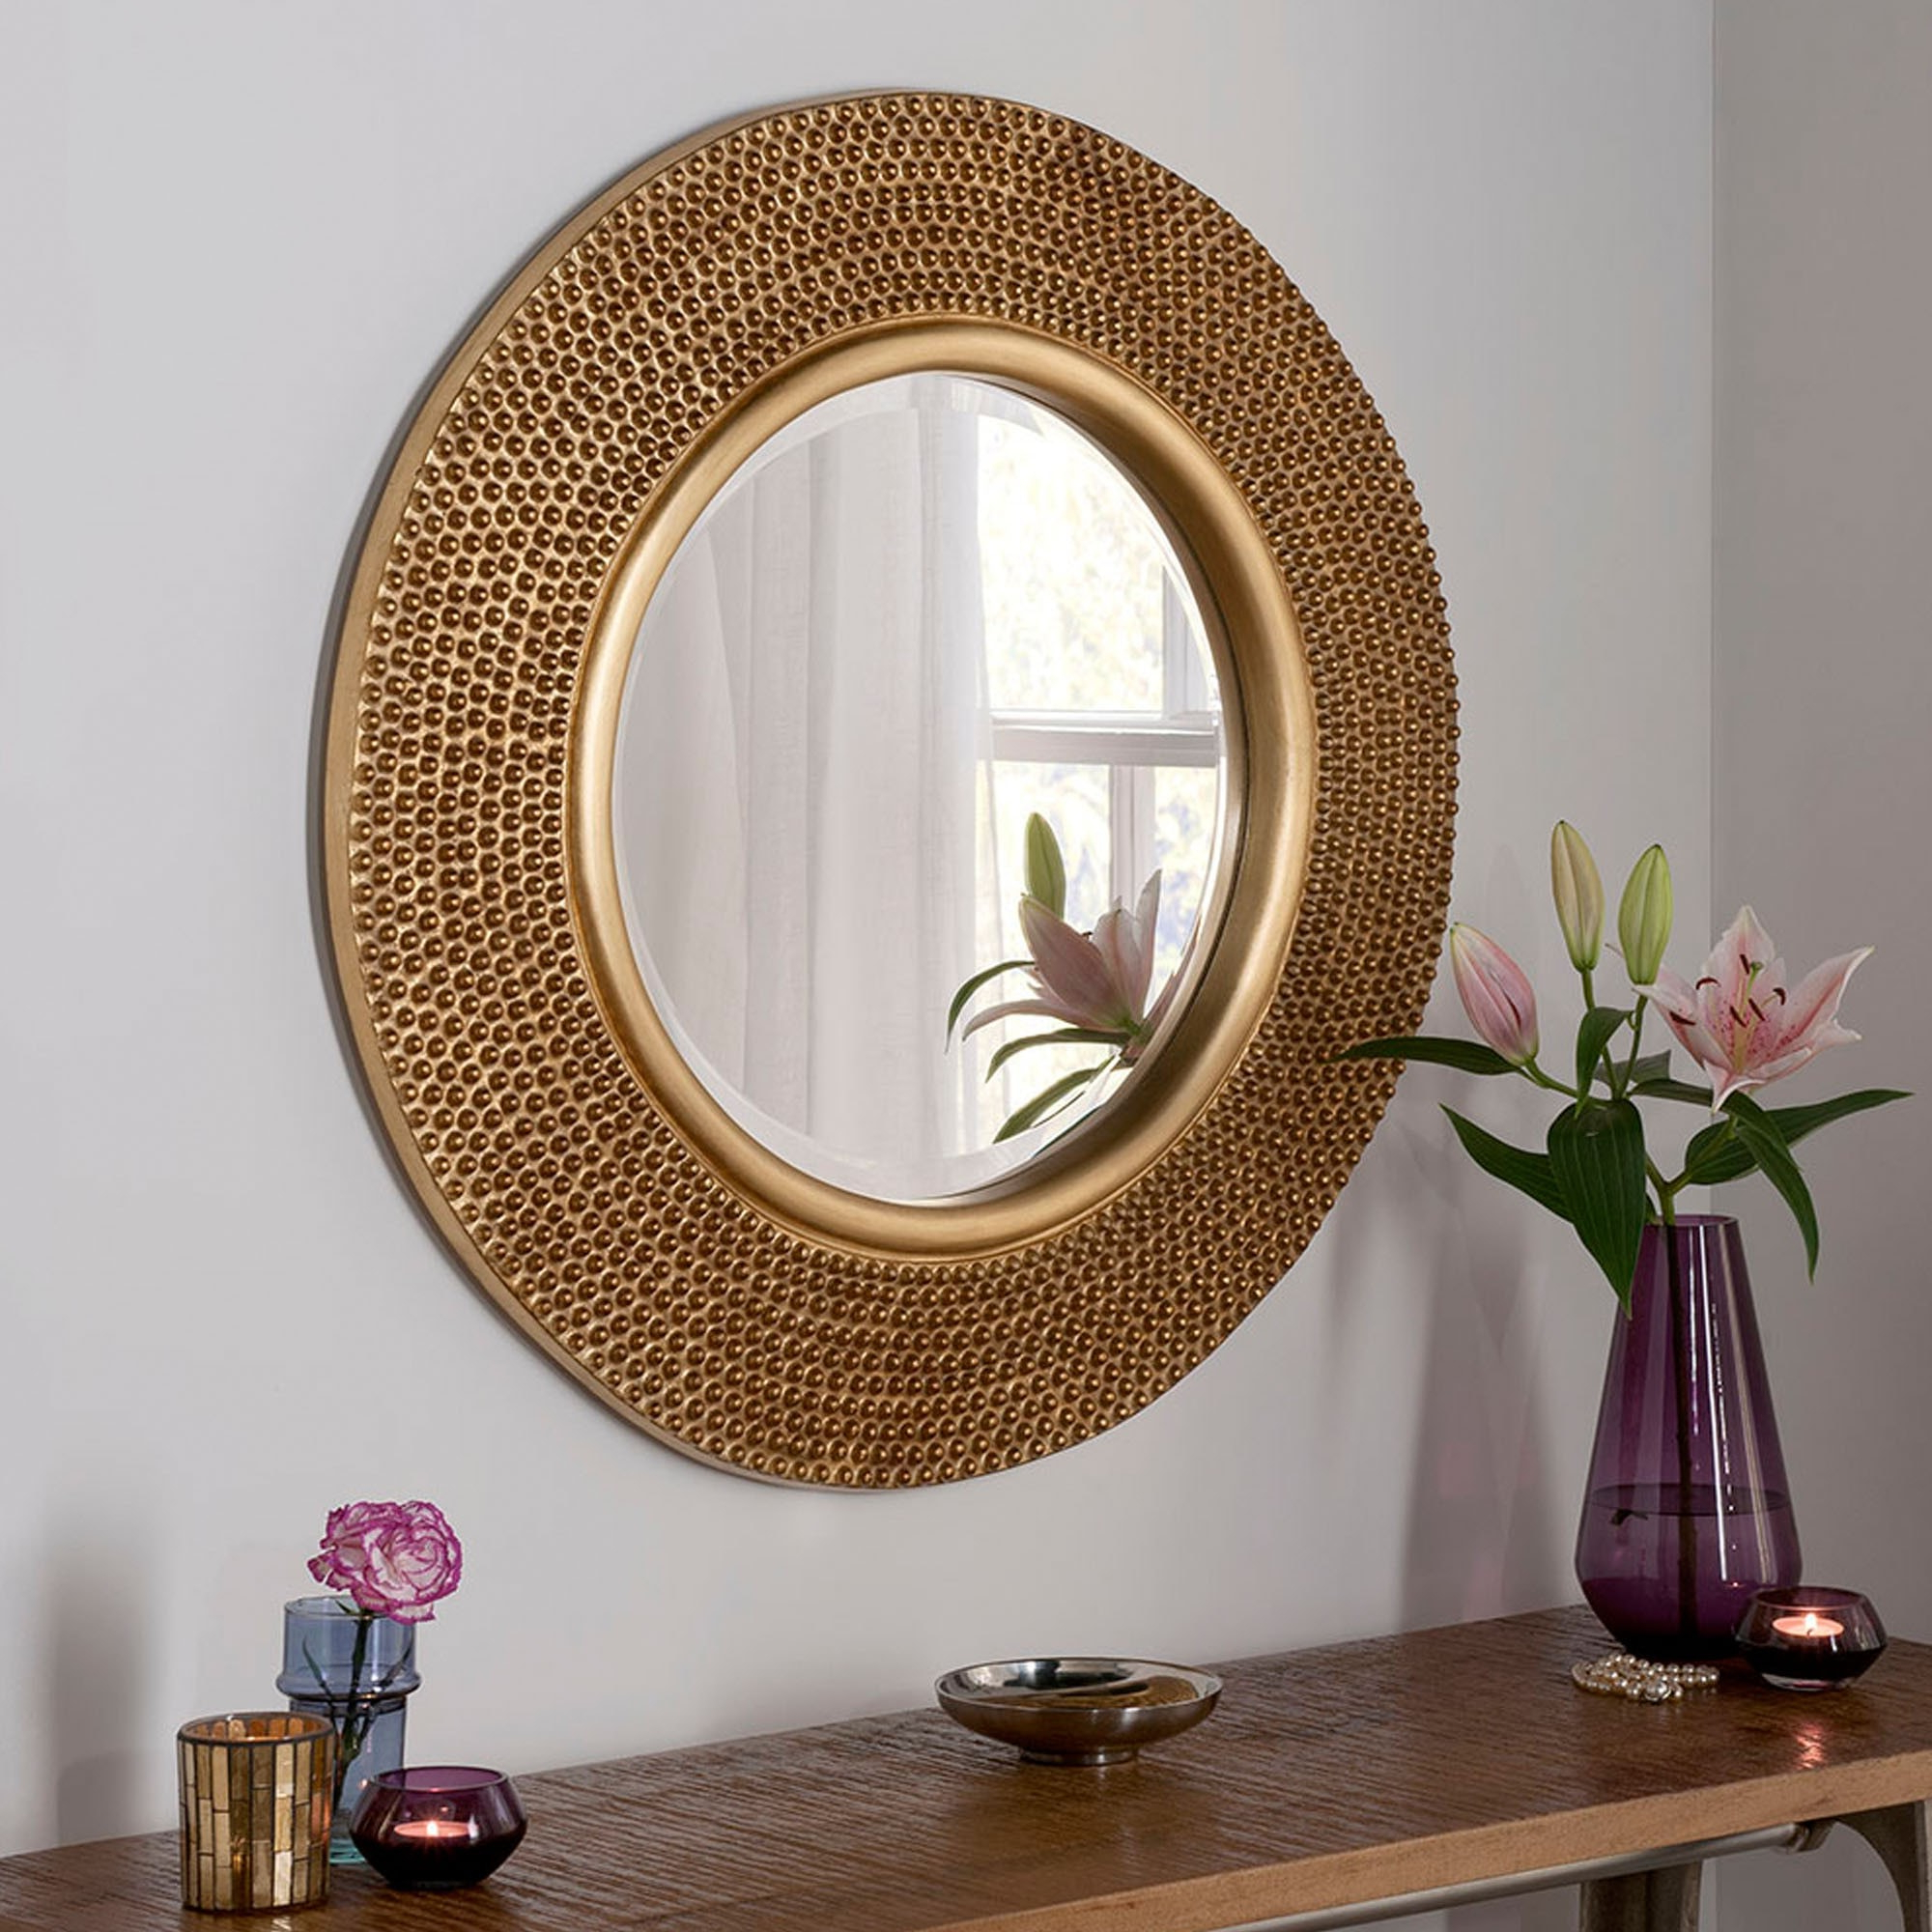 Most Popular Studded Wall Mirrors In Circular Contemporary Gold Studded Wall Mirror (View 9 of 20)